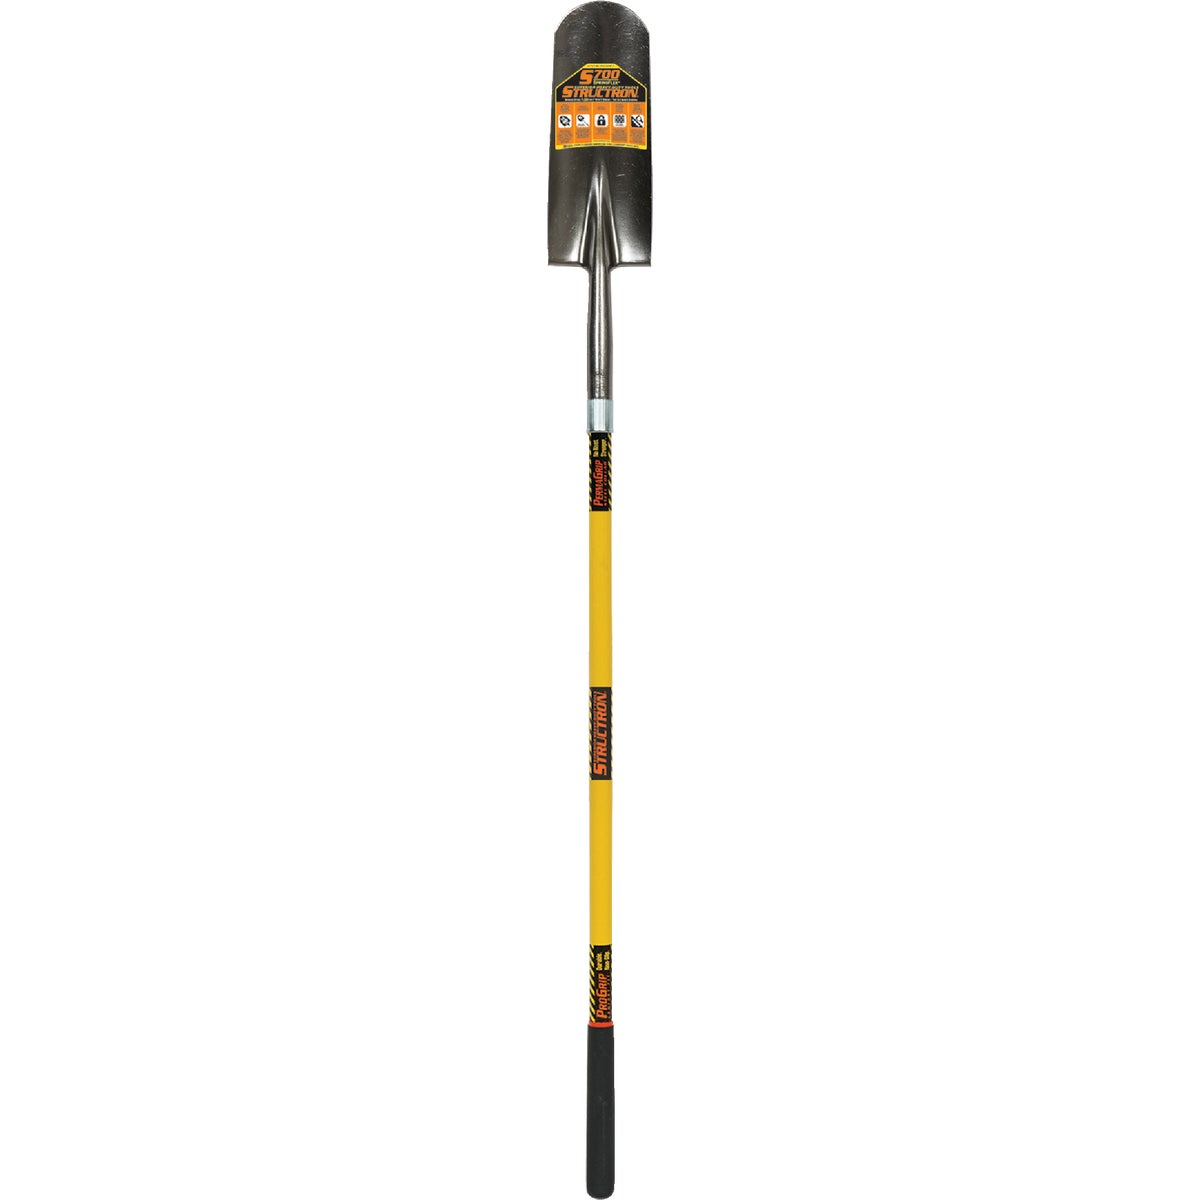 LONG HANDLE DRAIN SPADE - S704 by Seymour Mfg Co